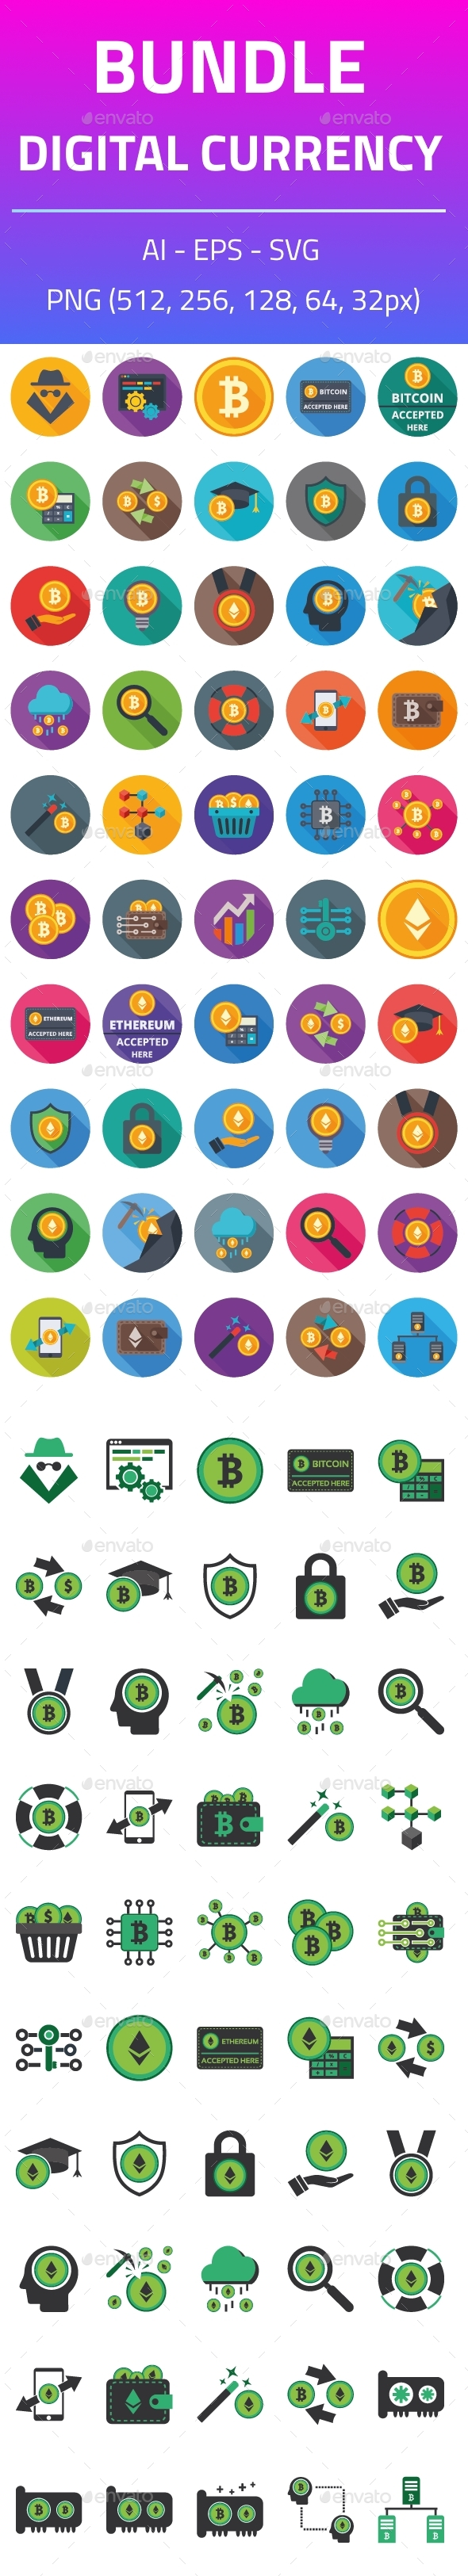 Digital Currency Bundle Icons - Icons